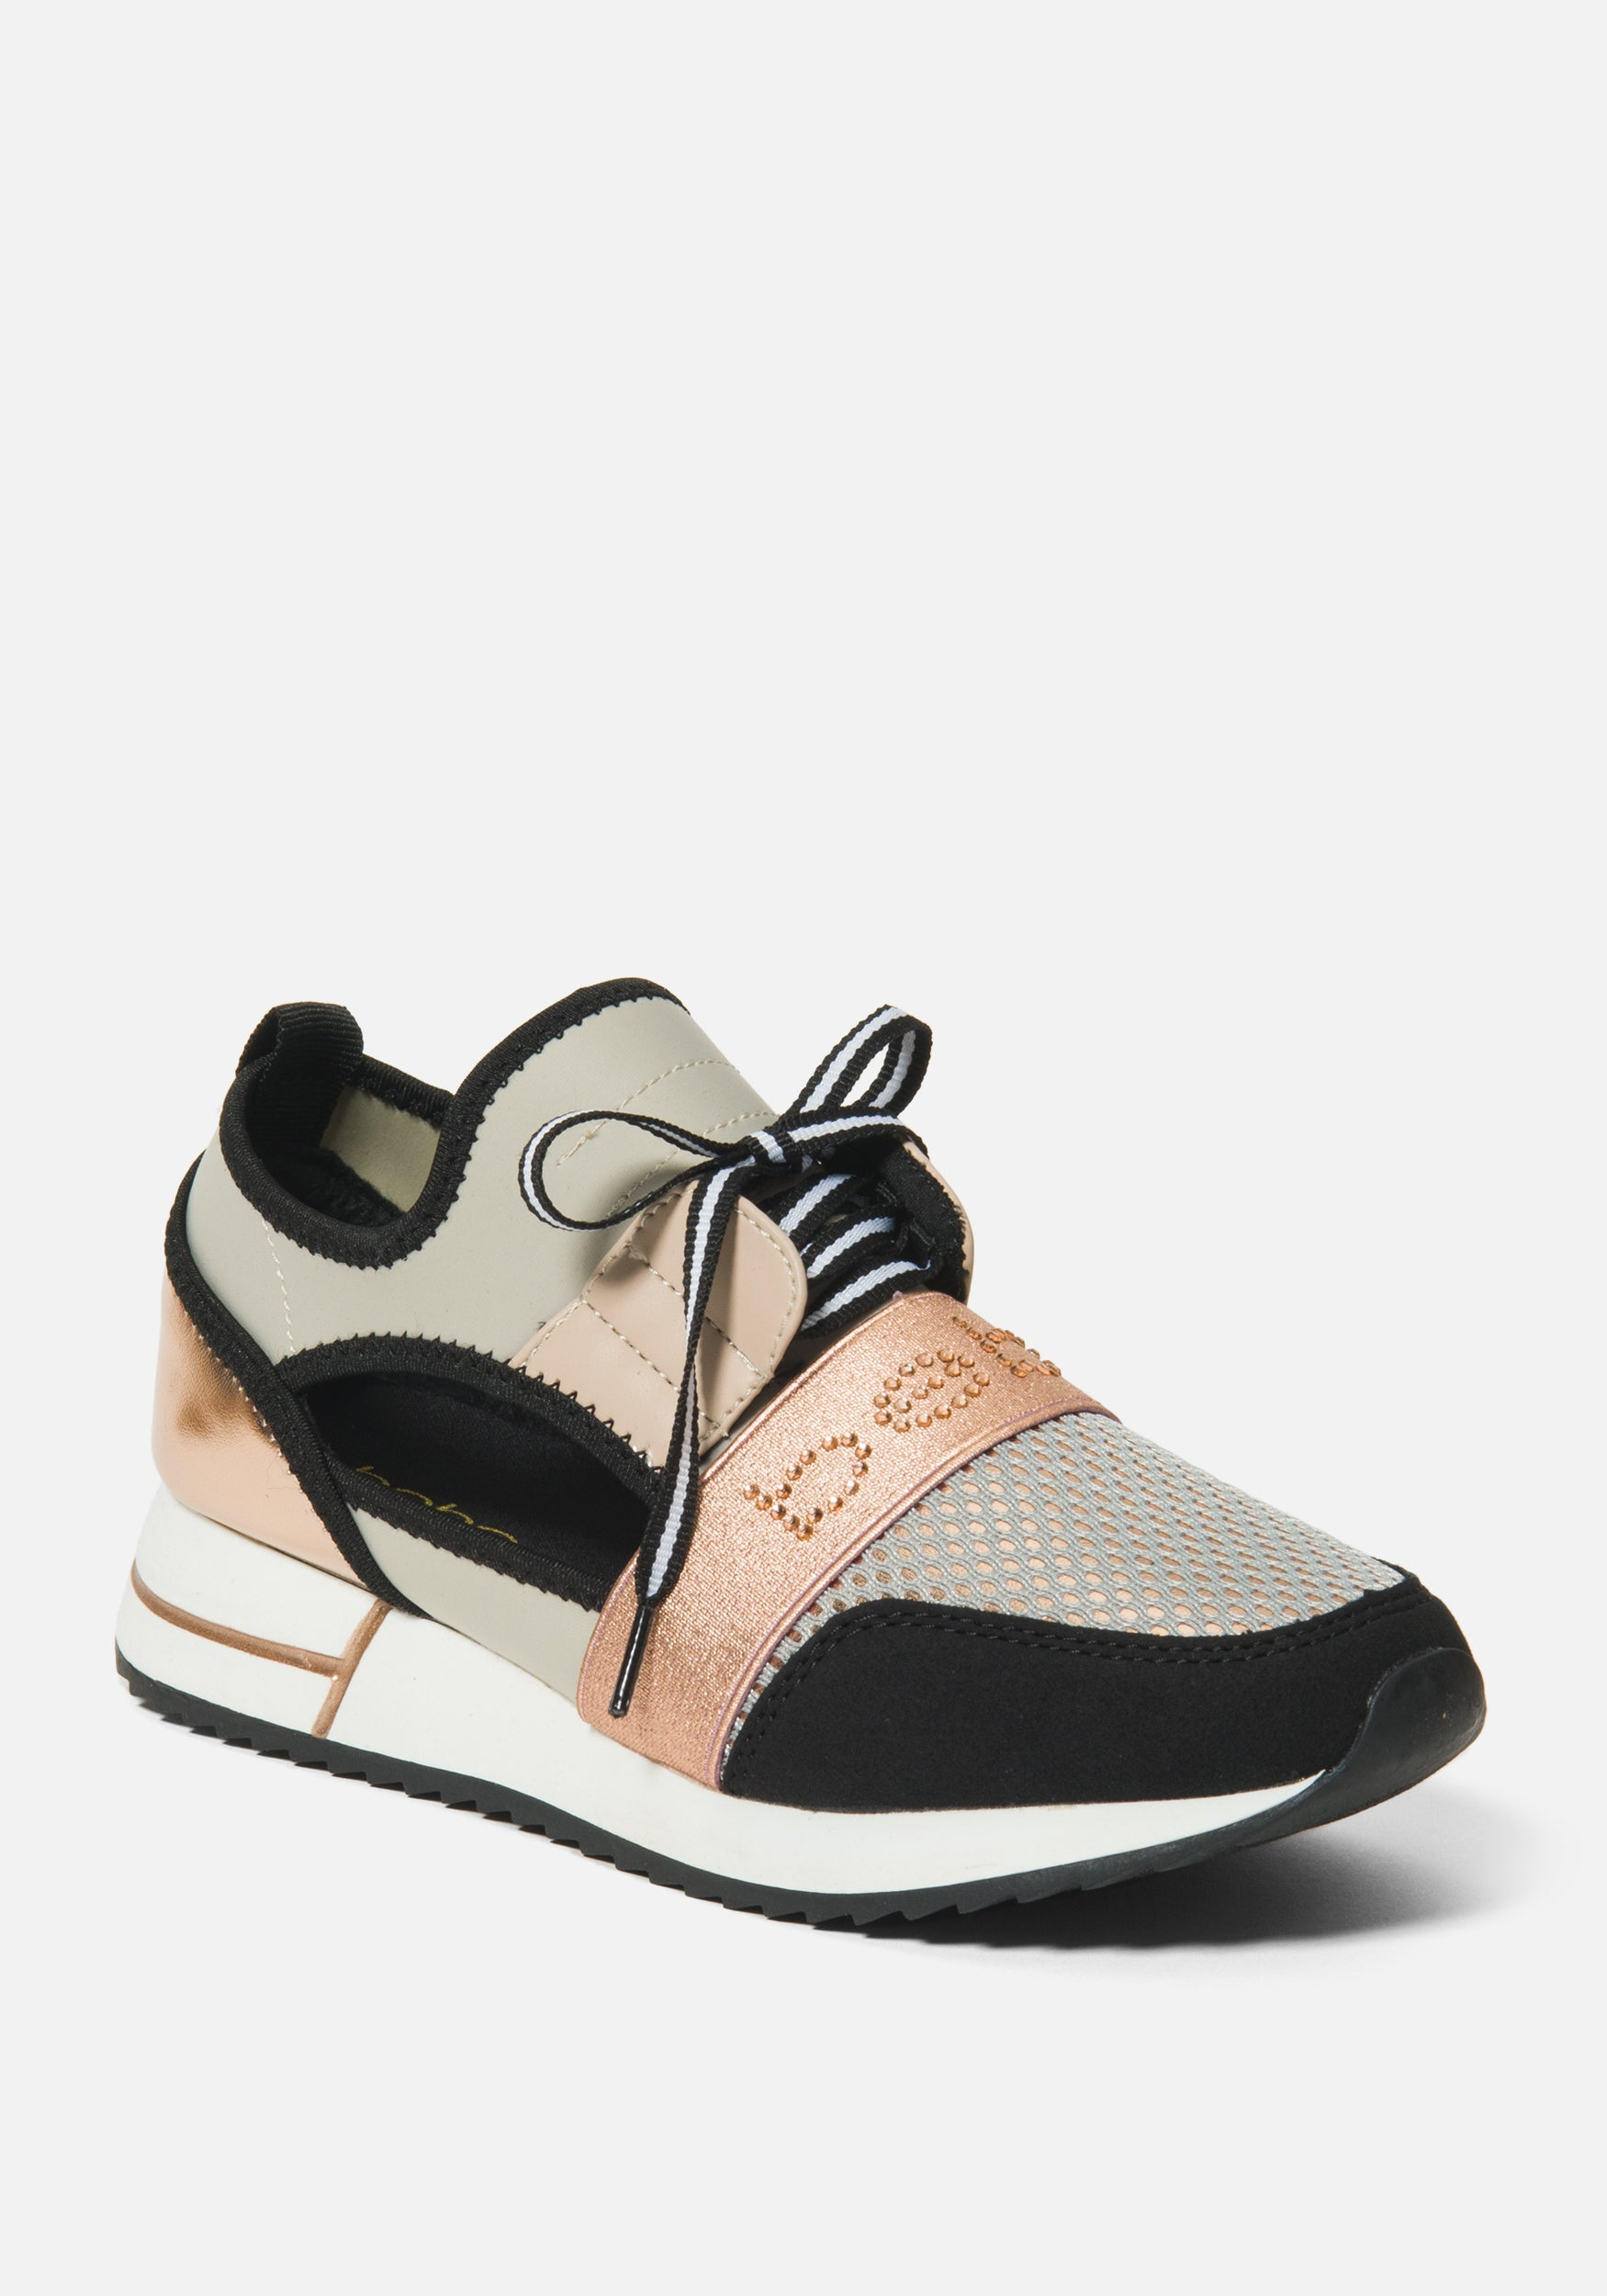 Women's Brienna A Bebe Logo Sneakers, Size 6 in Rose Gold Synthetic